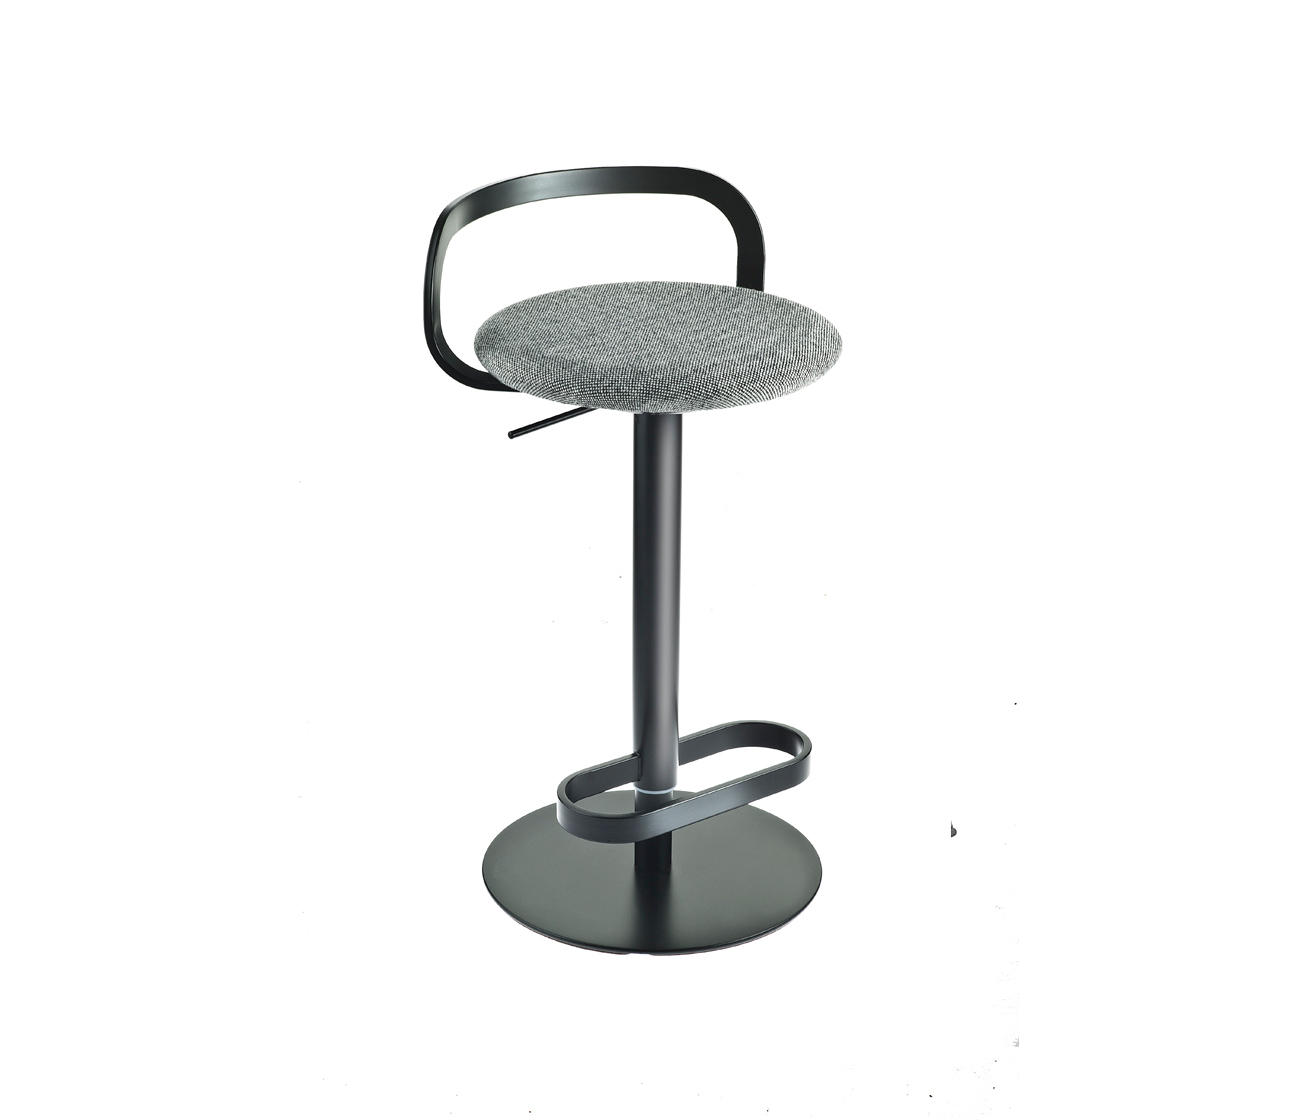 STOOLS - Research and select lapalma products online | Architonic - Mak | Bar stools | lapalma